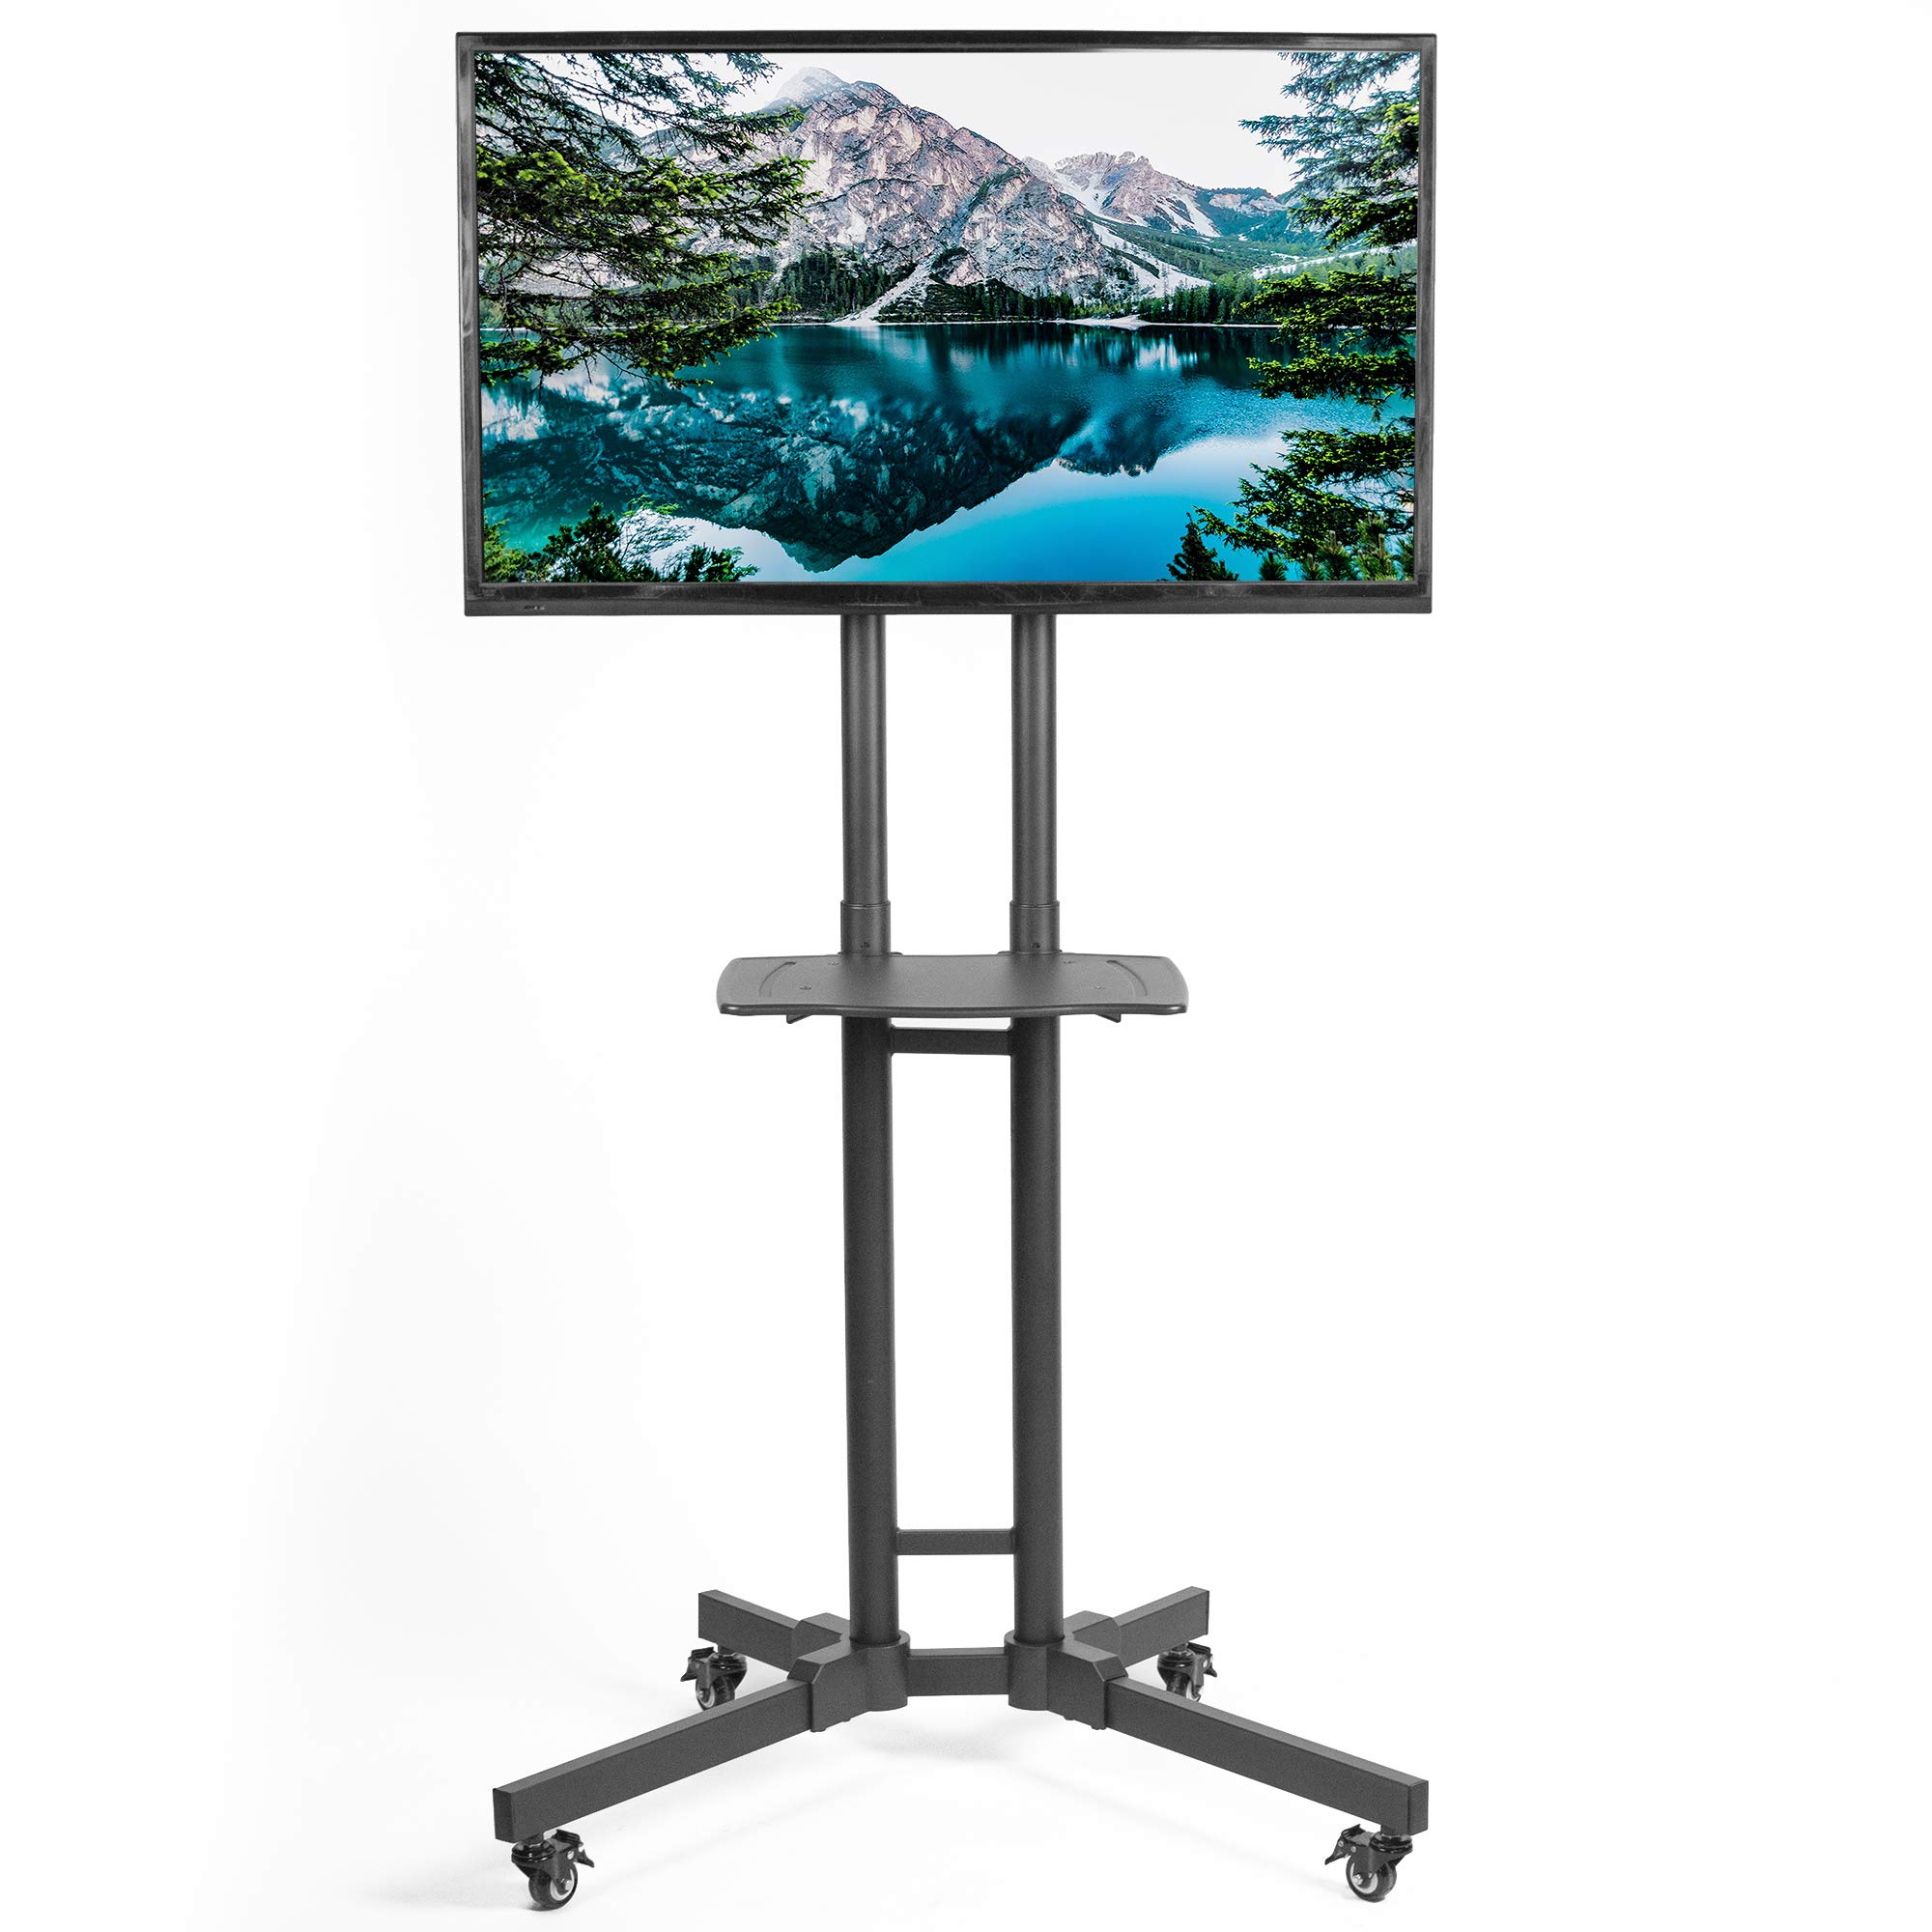 VIVO Mobile TV Cart for 32 to 65 inch LCD LED Flat Screens | Height Adjustable TV Stand Mount with Shelf and Wheels (STAND-TV05K)